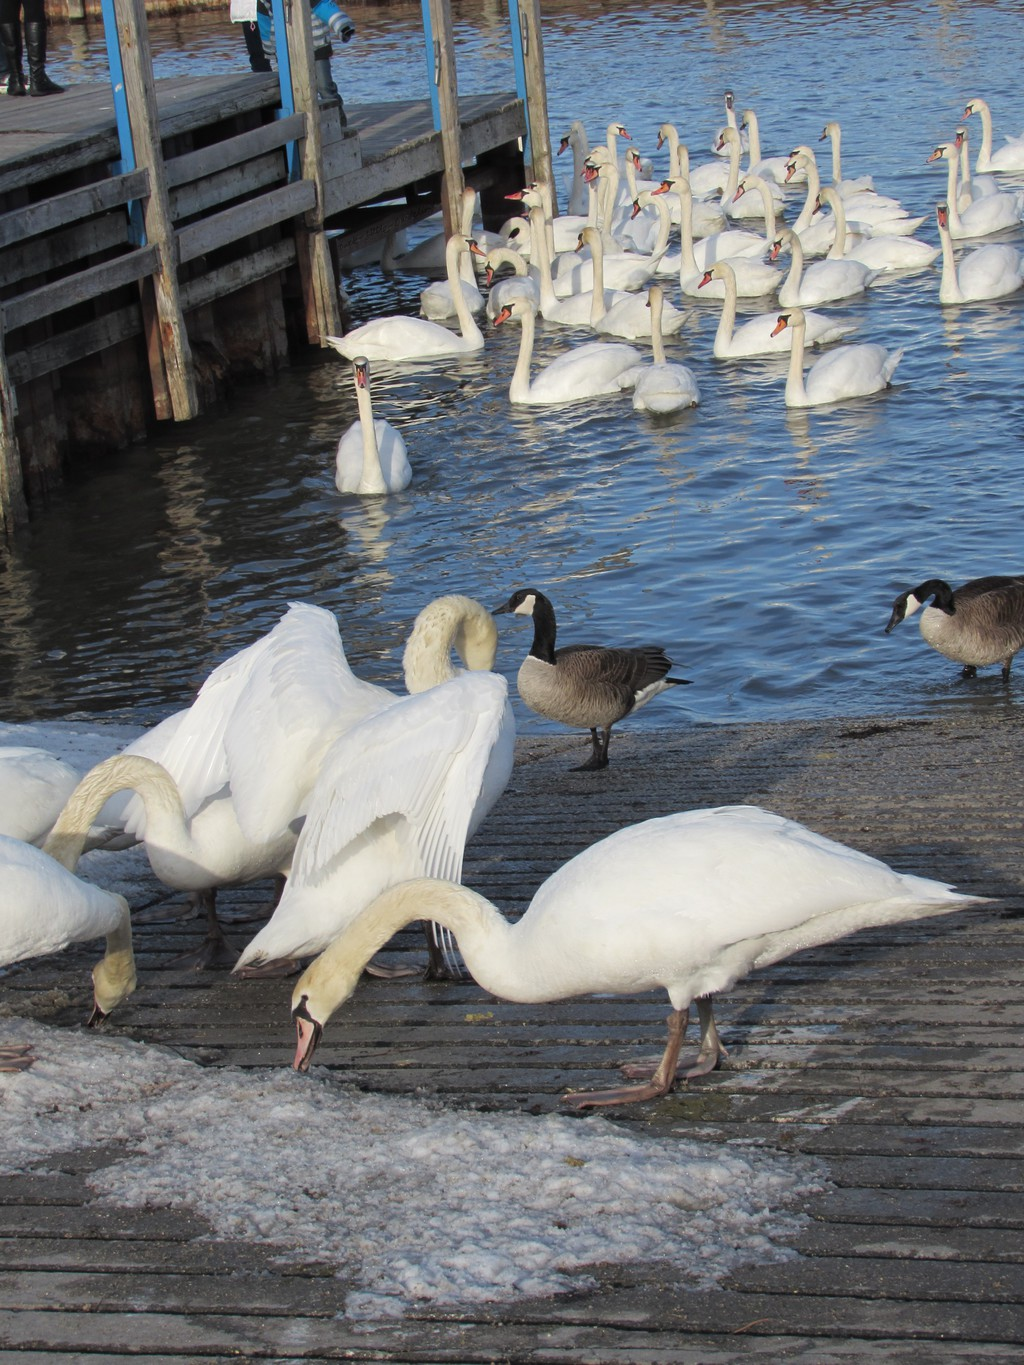 a couple of geese and lots of swans